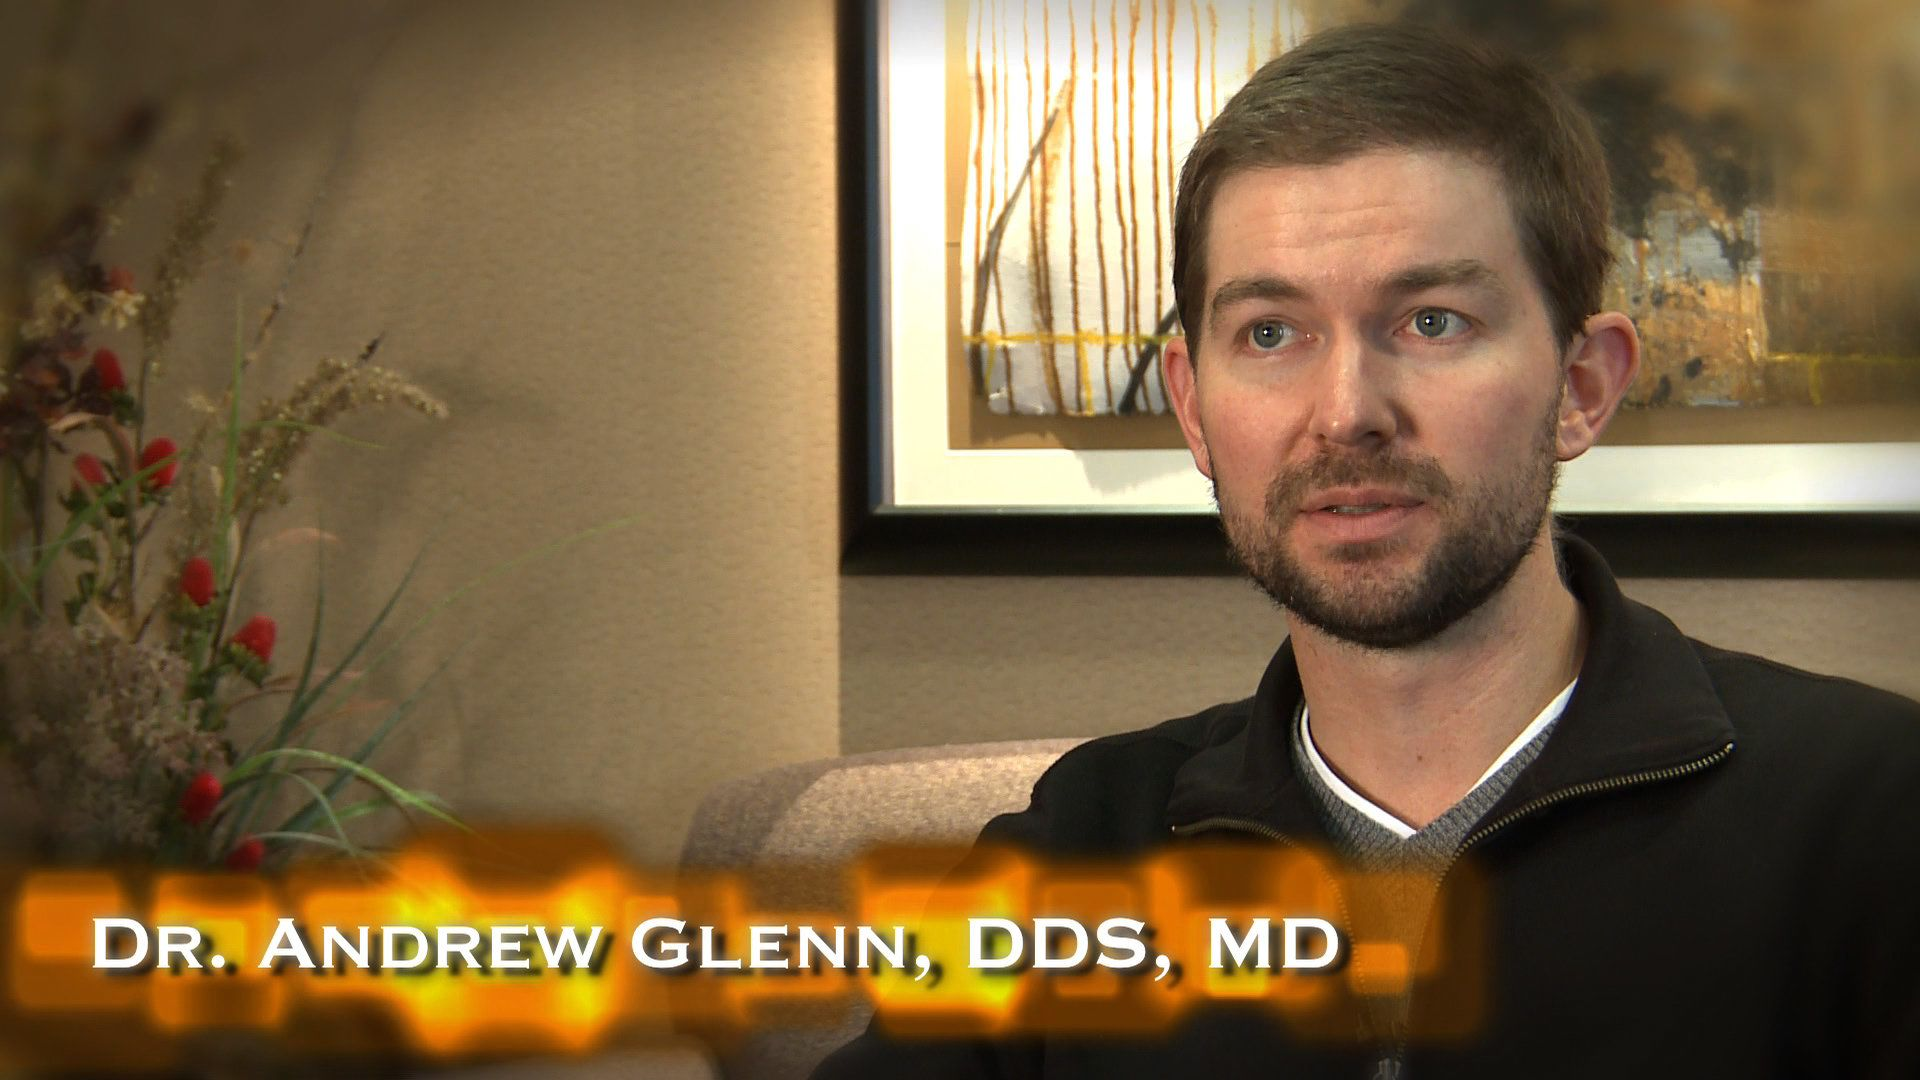 About Dr. Andrew Glenn